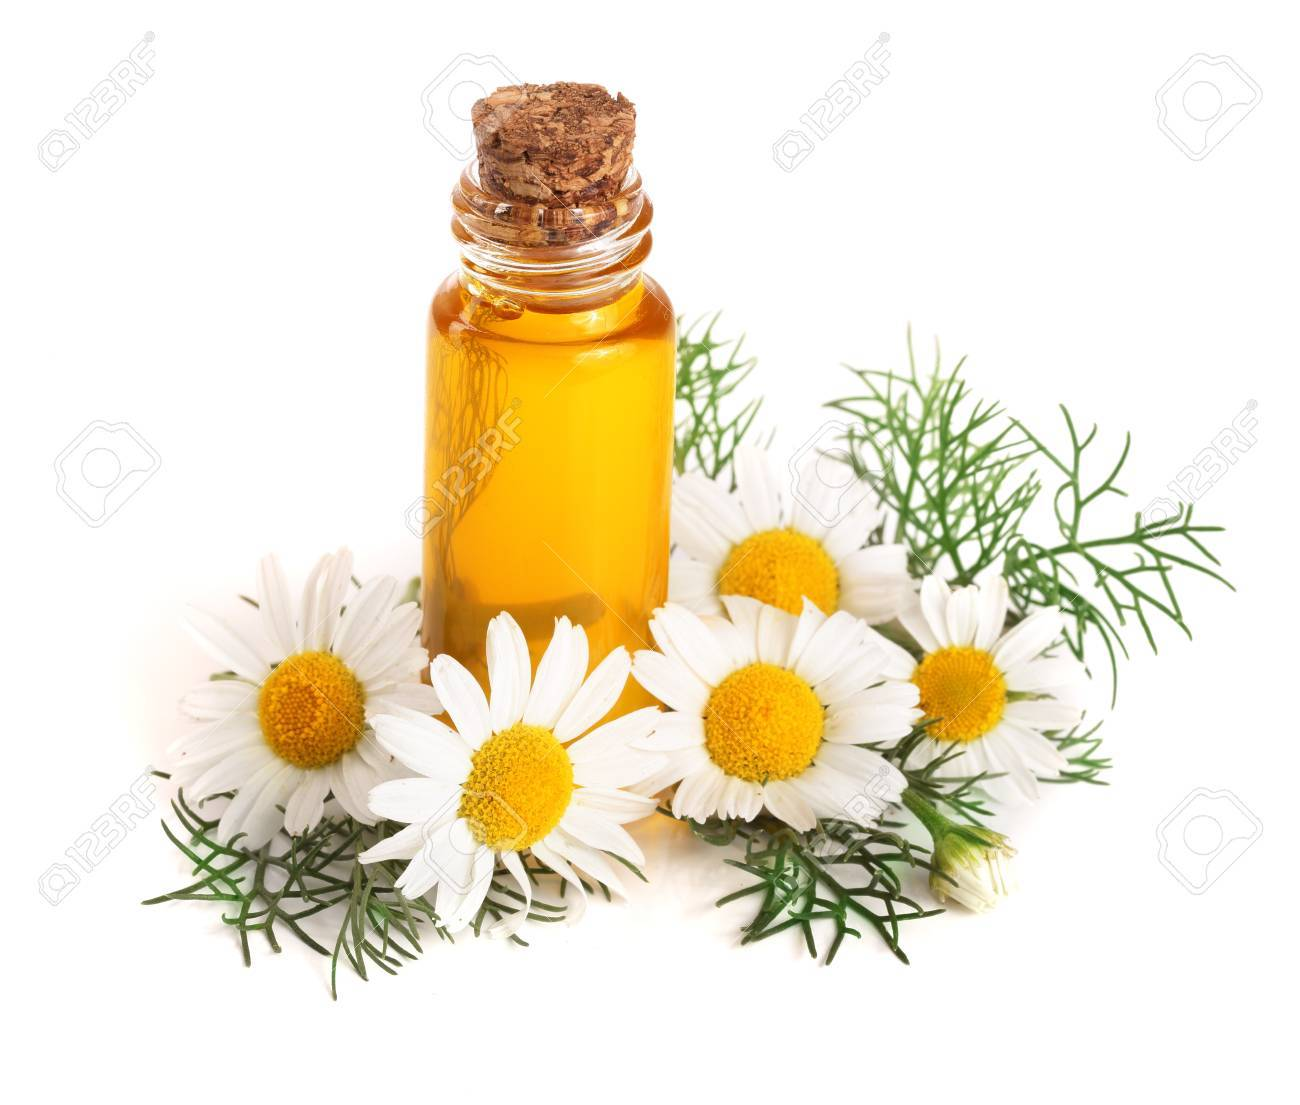 bottle with essential oil and fresh chamomile flowers isolated on white background - 89122584